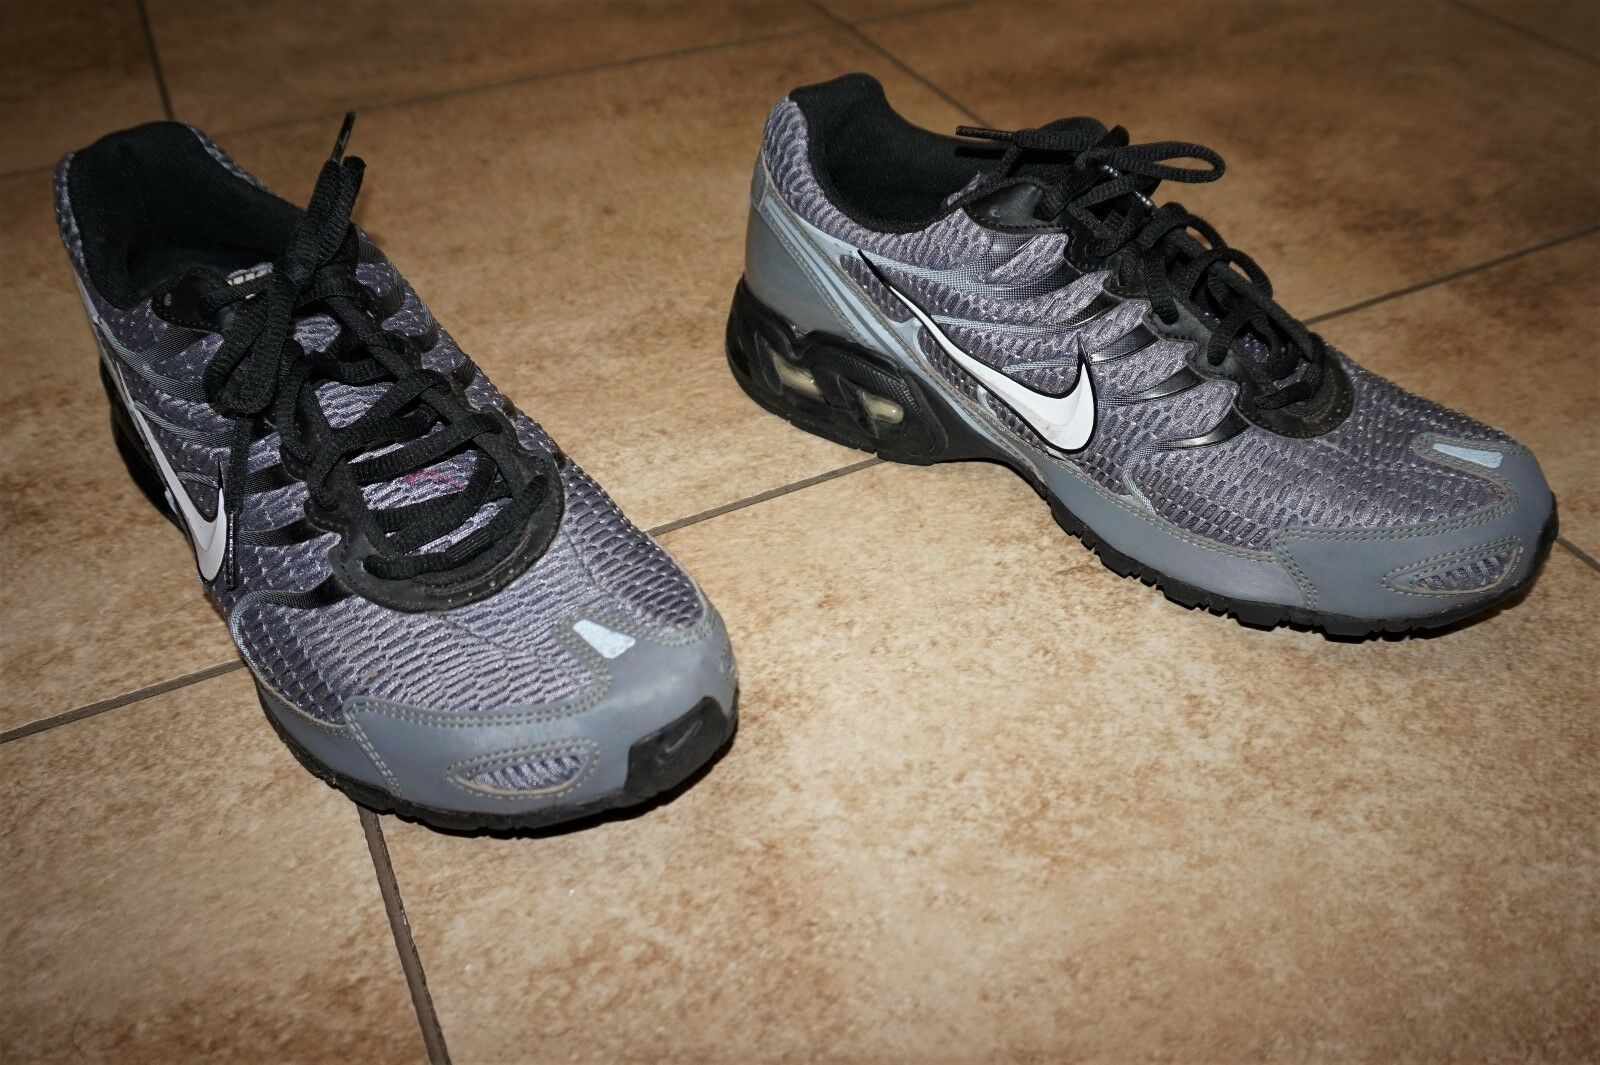 NIKE Mens Air Max Torch 4 Running Shoes Cool Grey White Black Platinum Size 11.5